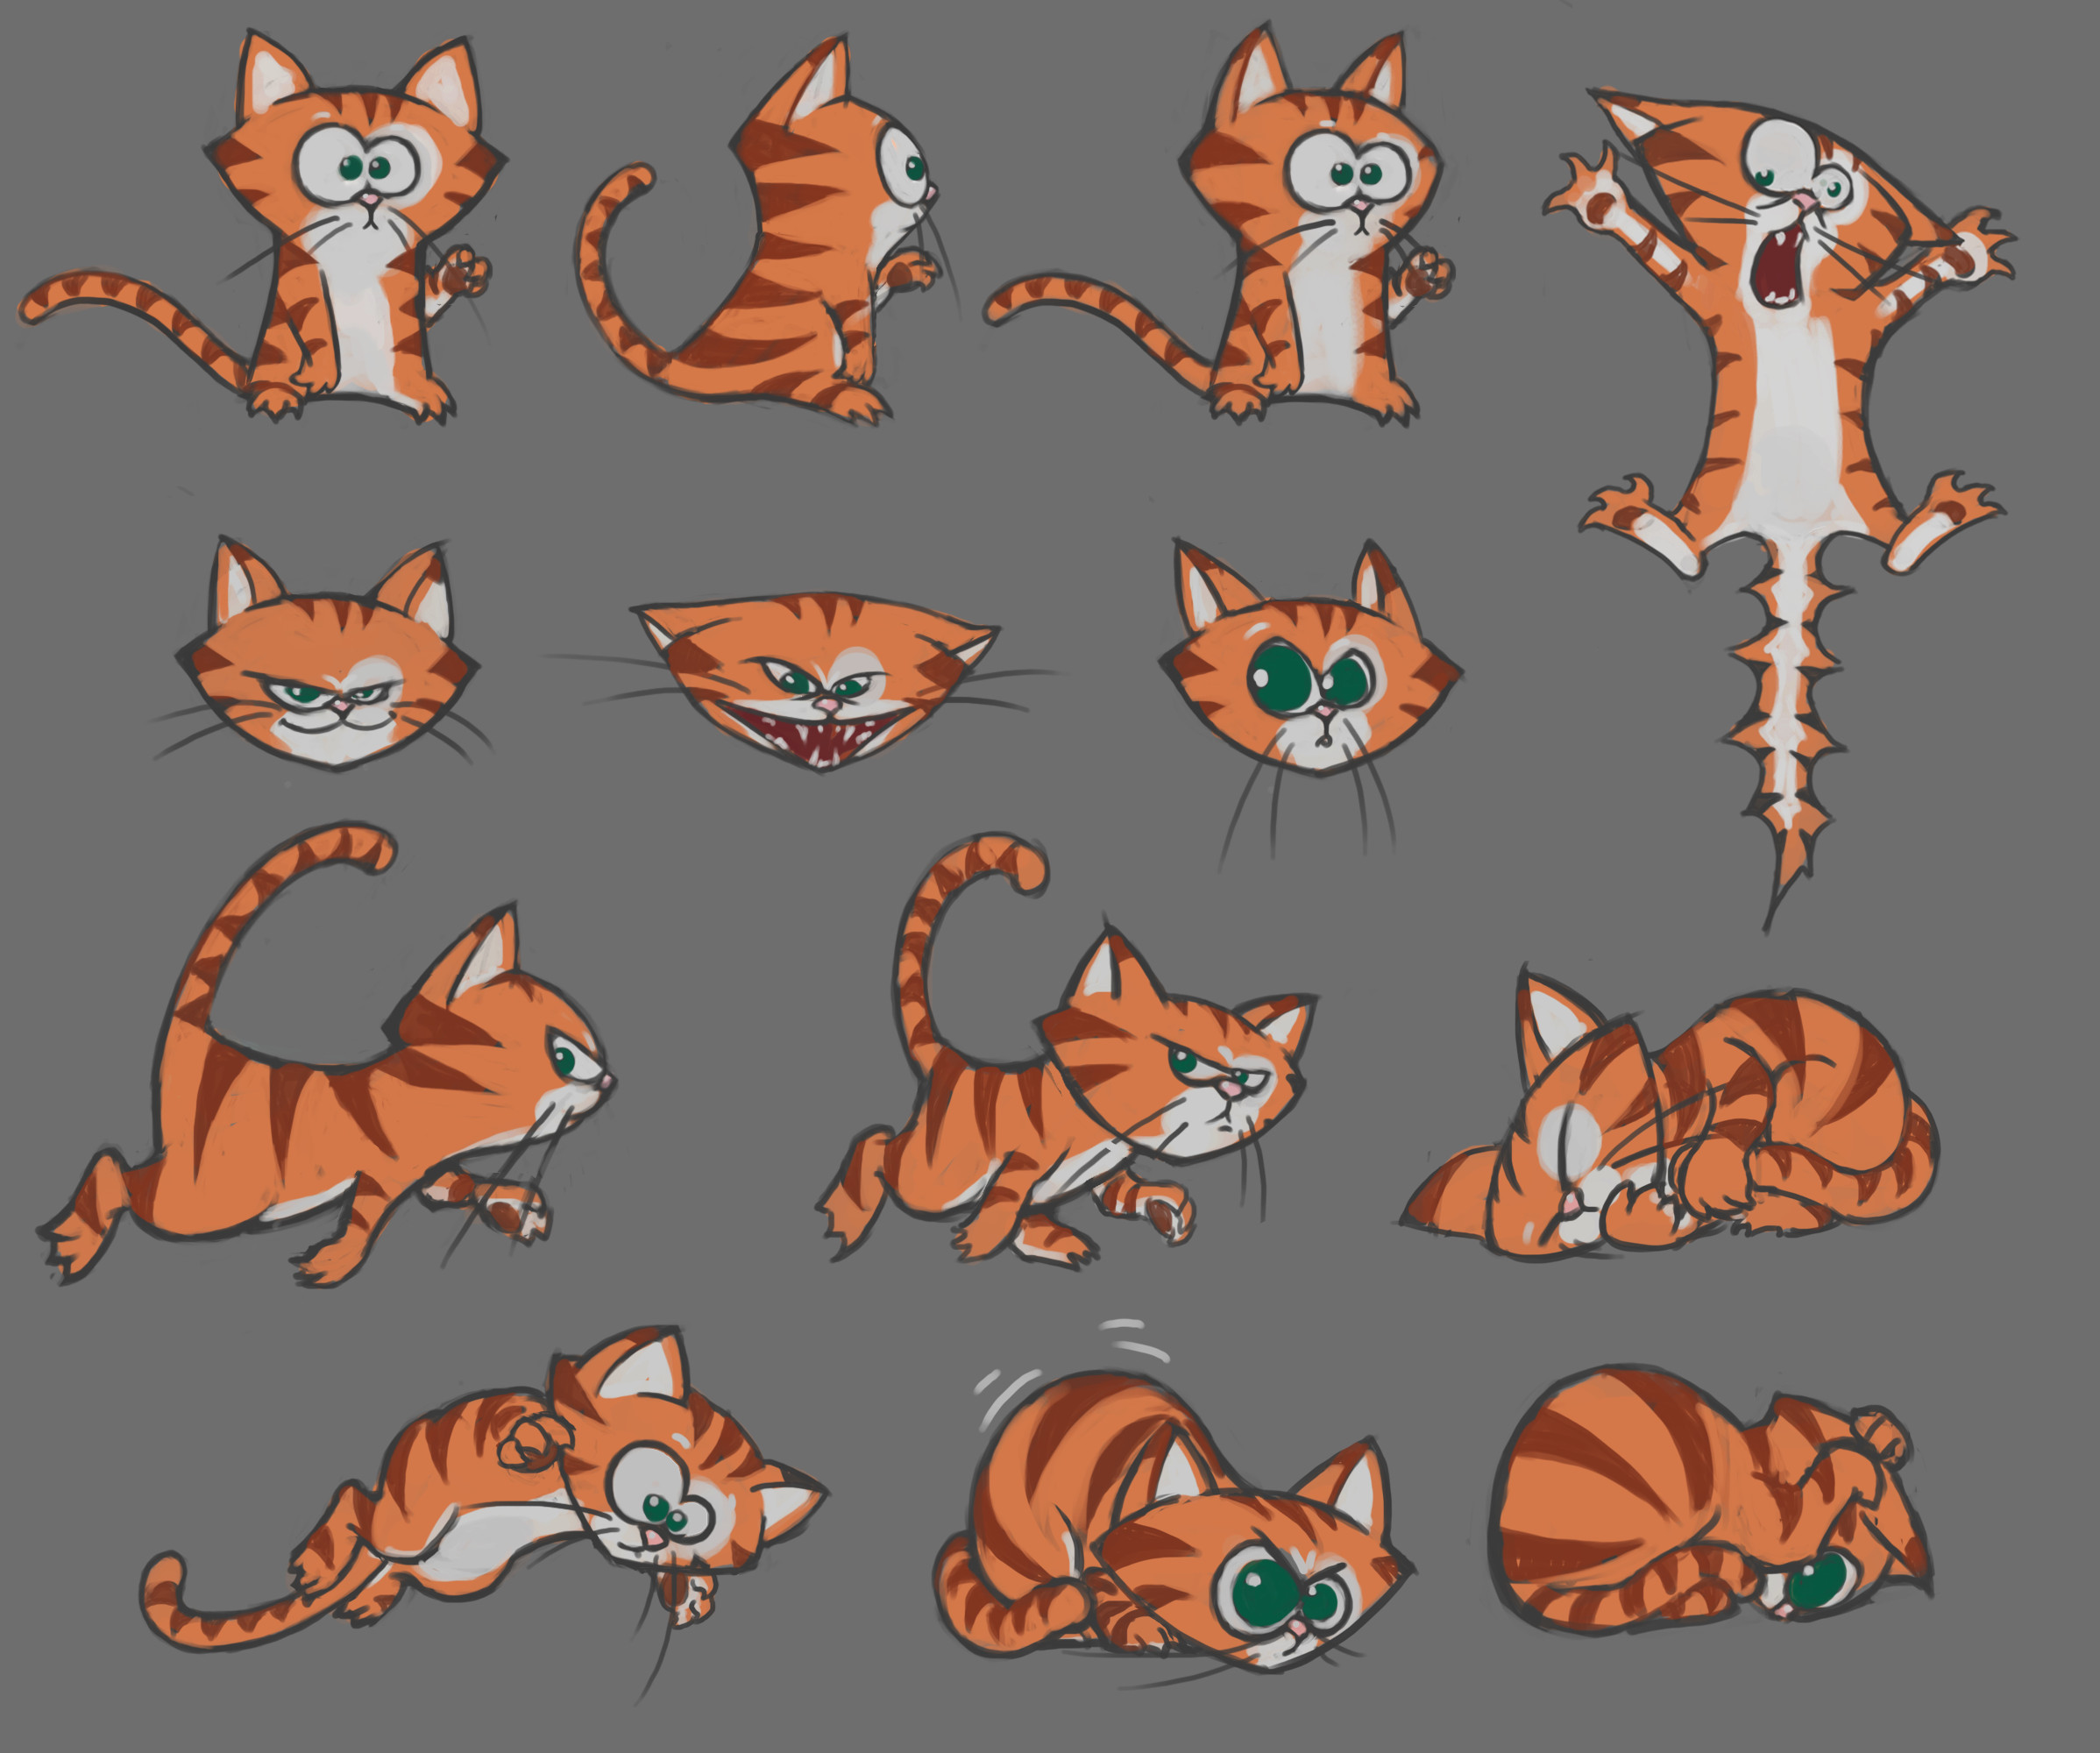 Emotion states for the big bad kitty cat. Mmrar